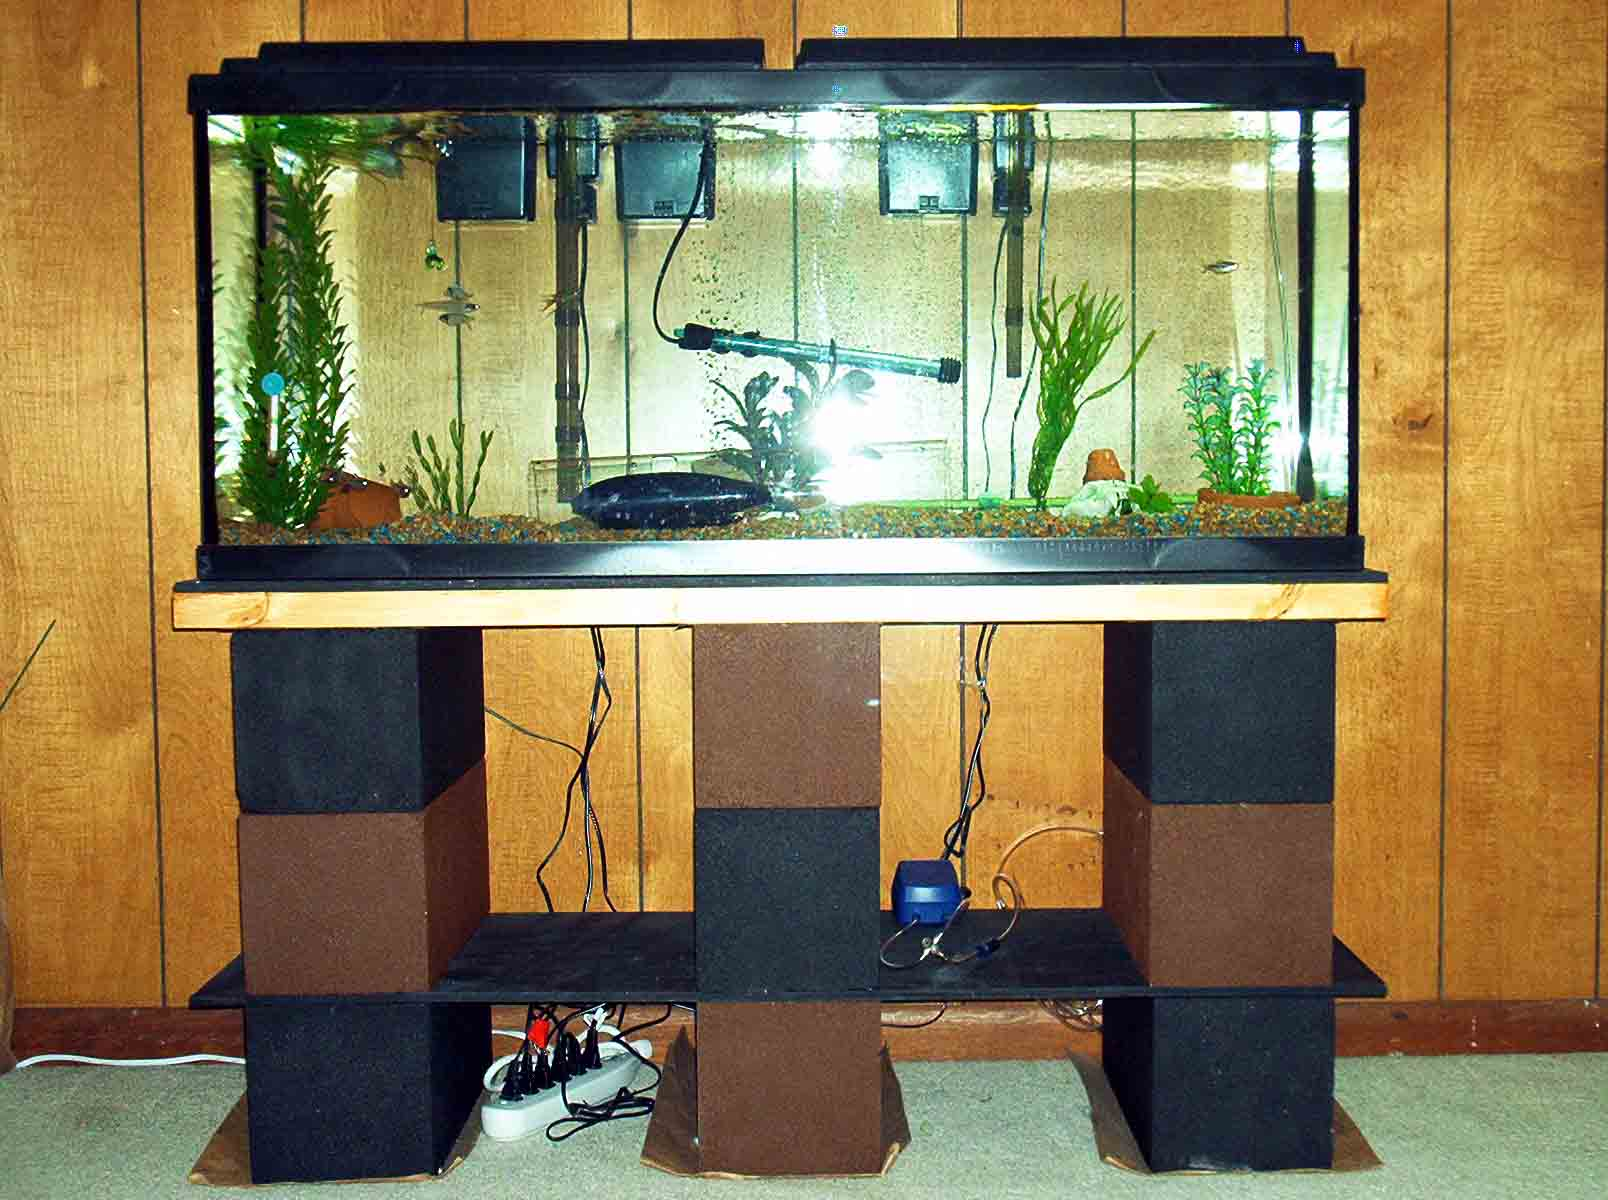 How To Make A Sturdy Fish Tank Stand